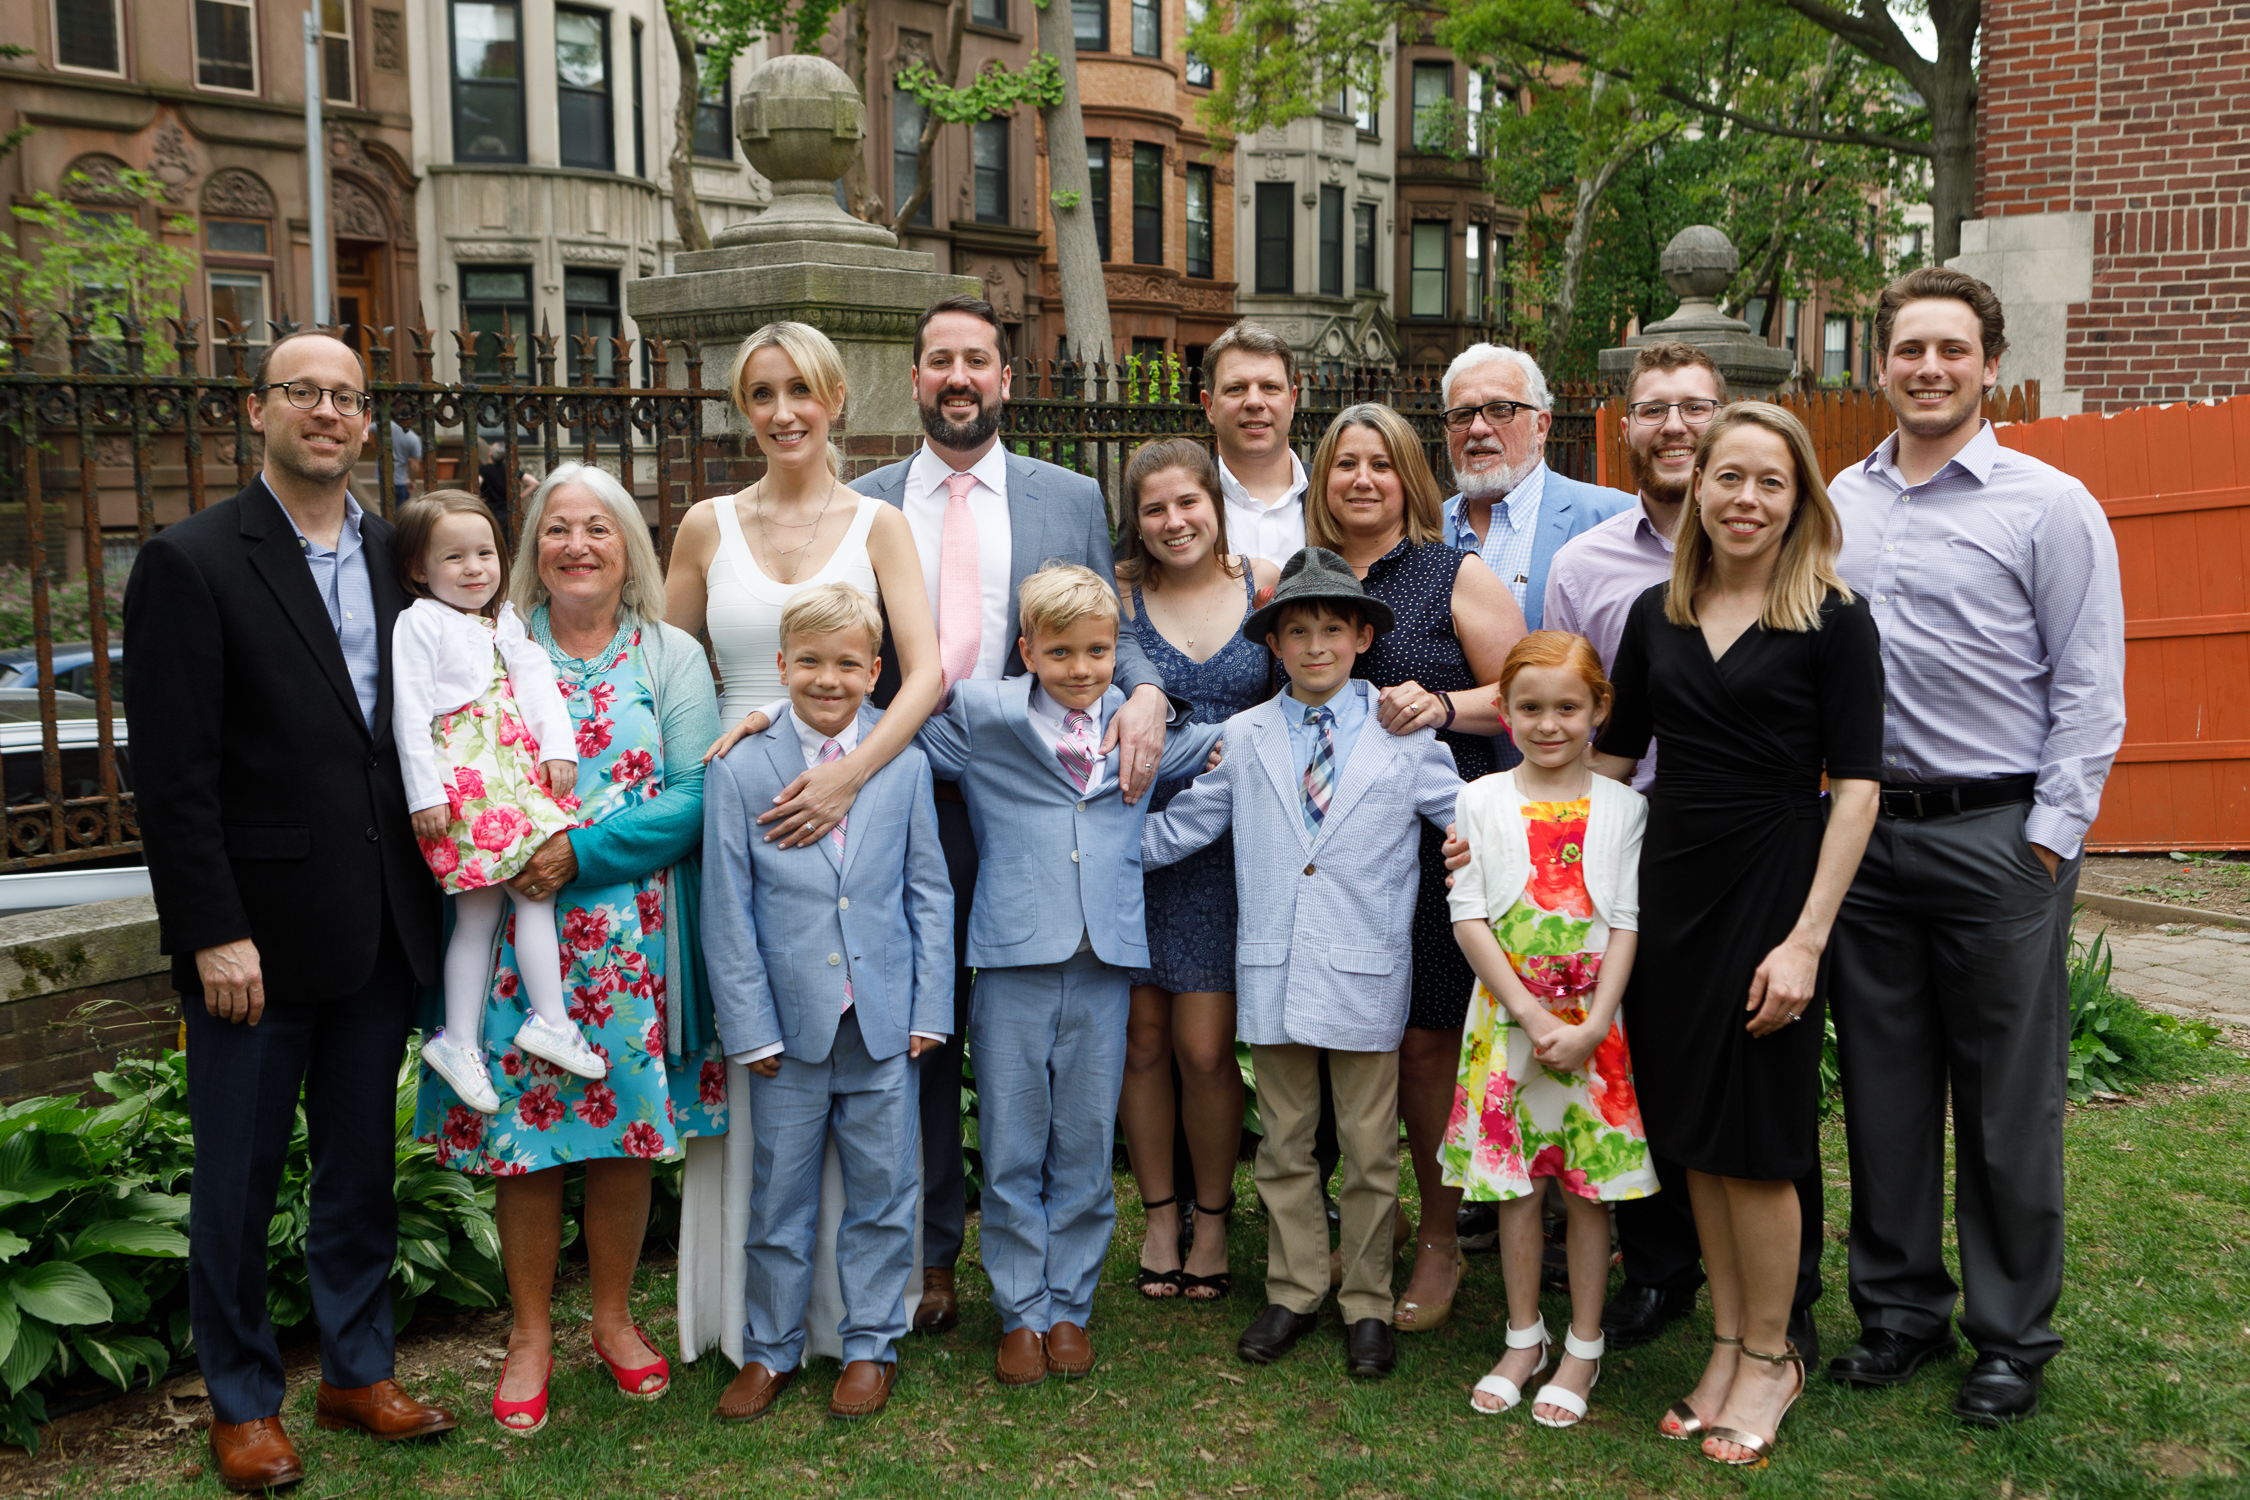 Brooklyn Wedding Photographer _ Jonathan Heisler _ 5112019 _015.jpg